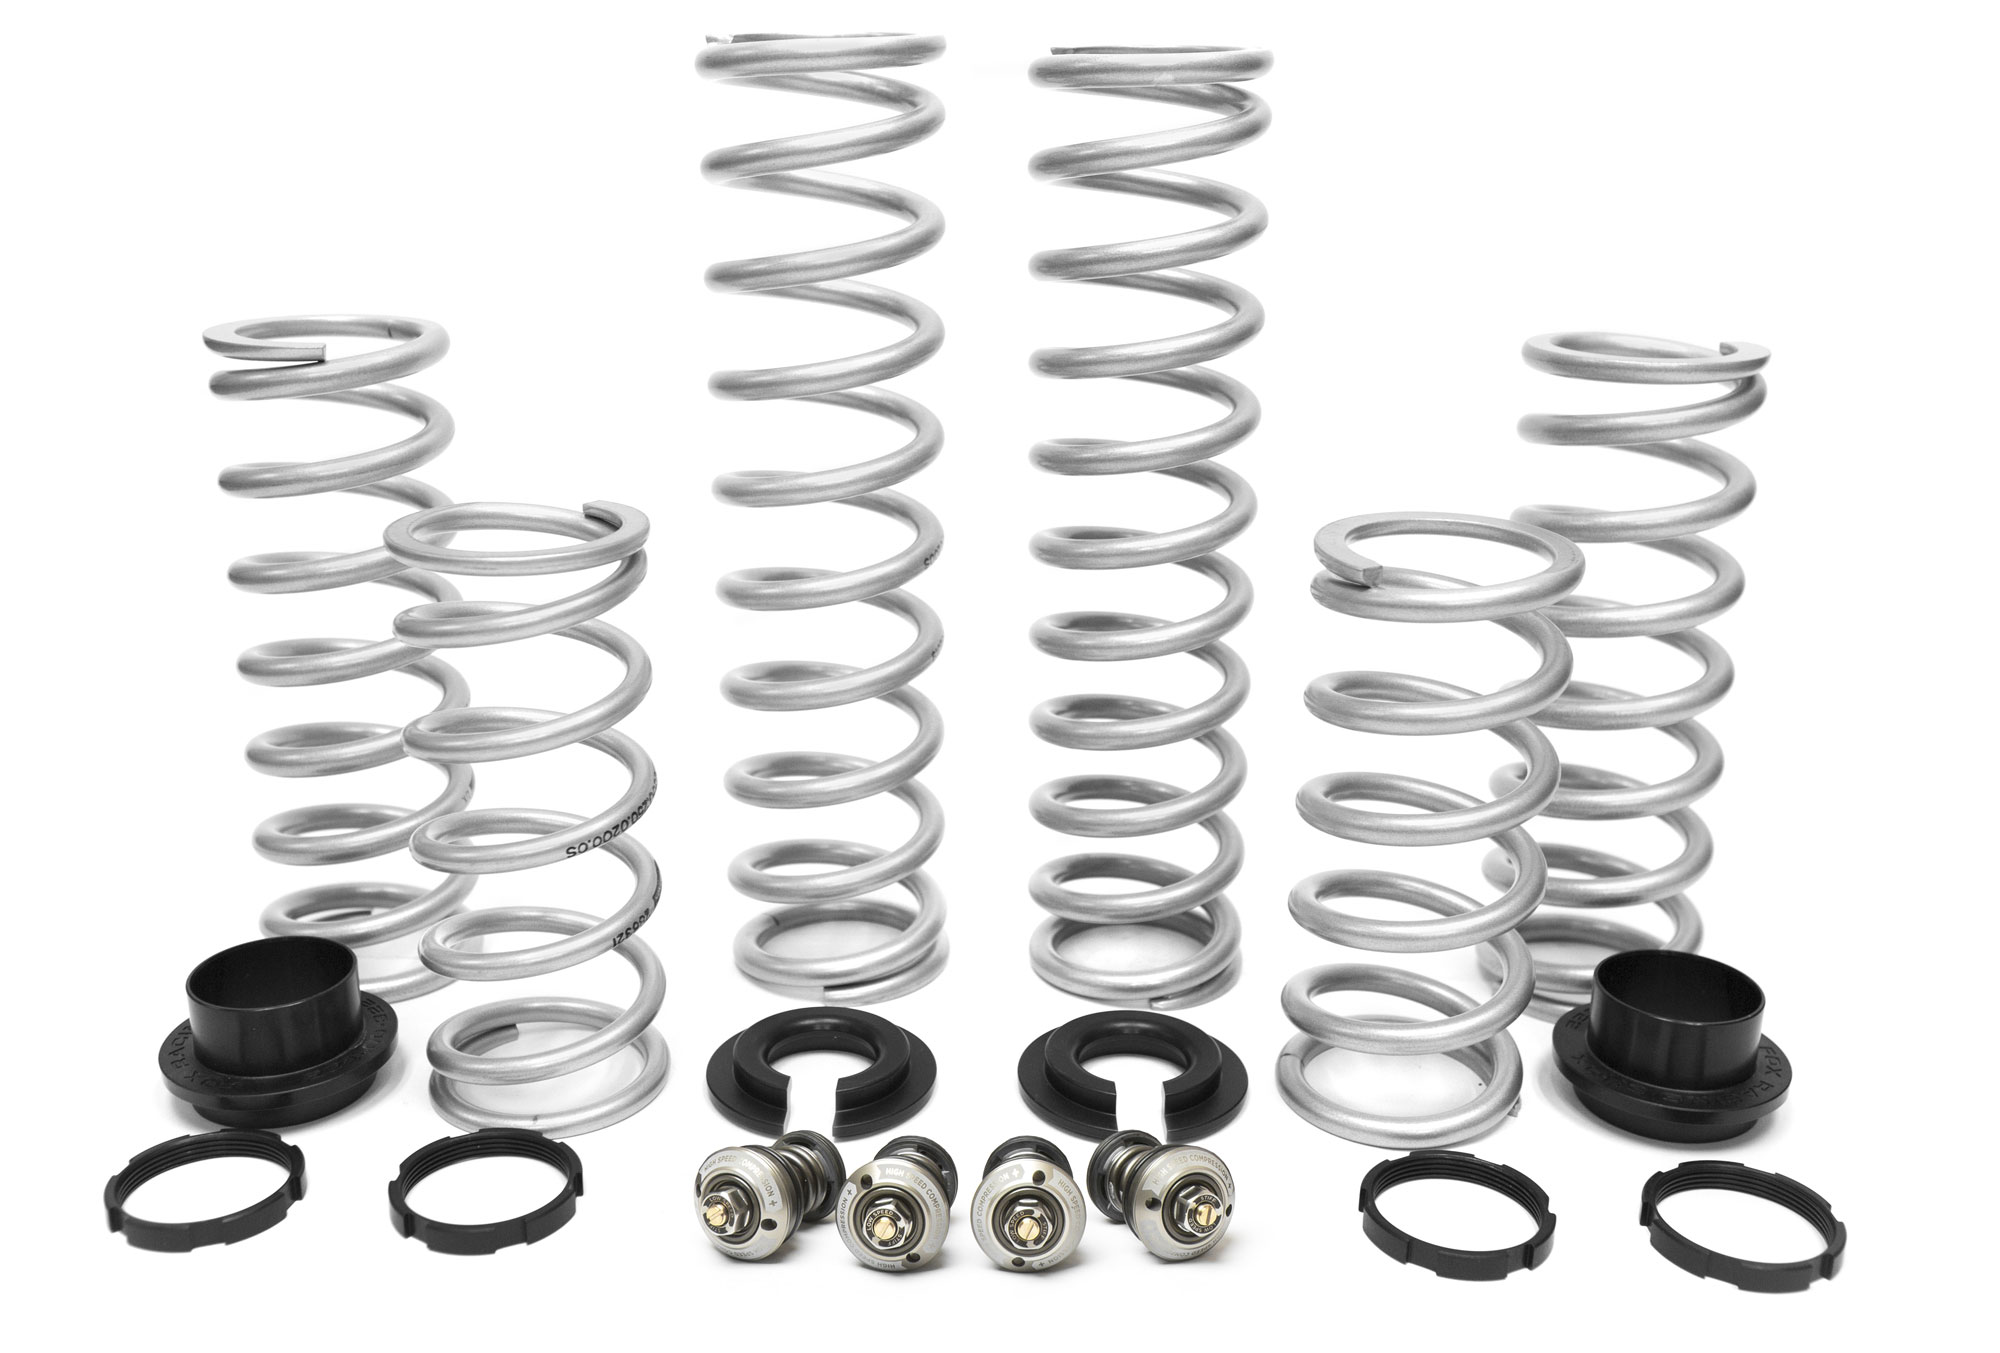 Polaris RZR XP Turbo 1000 Internal Bypass, Factory Race Series Upgrade Kit